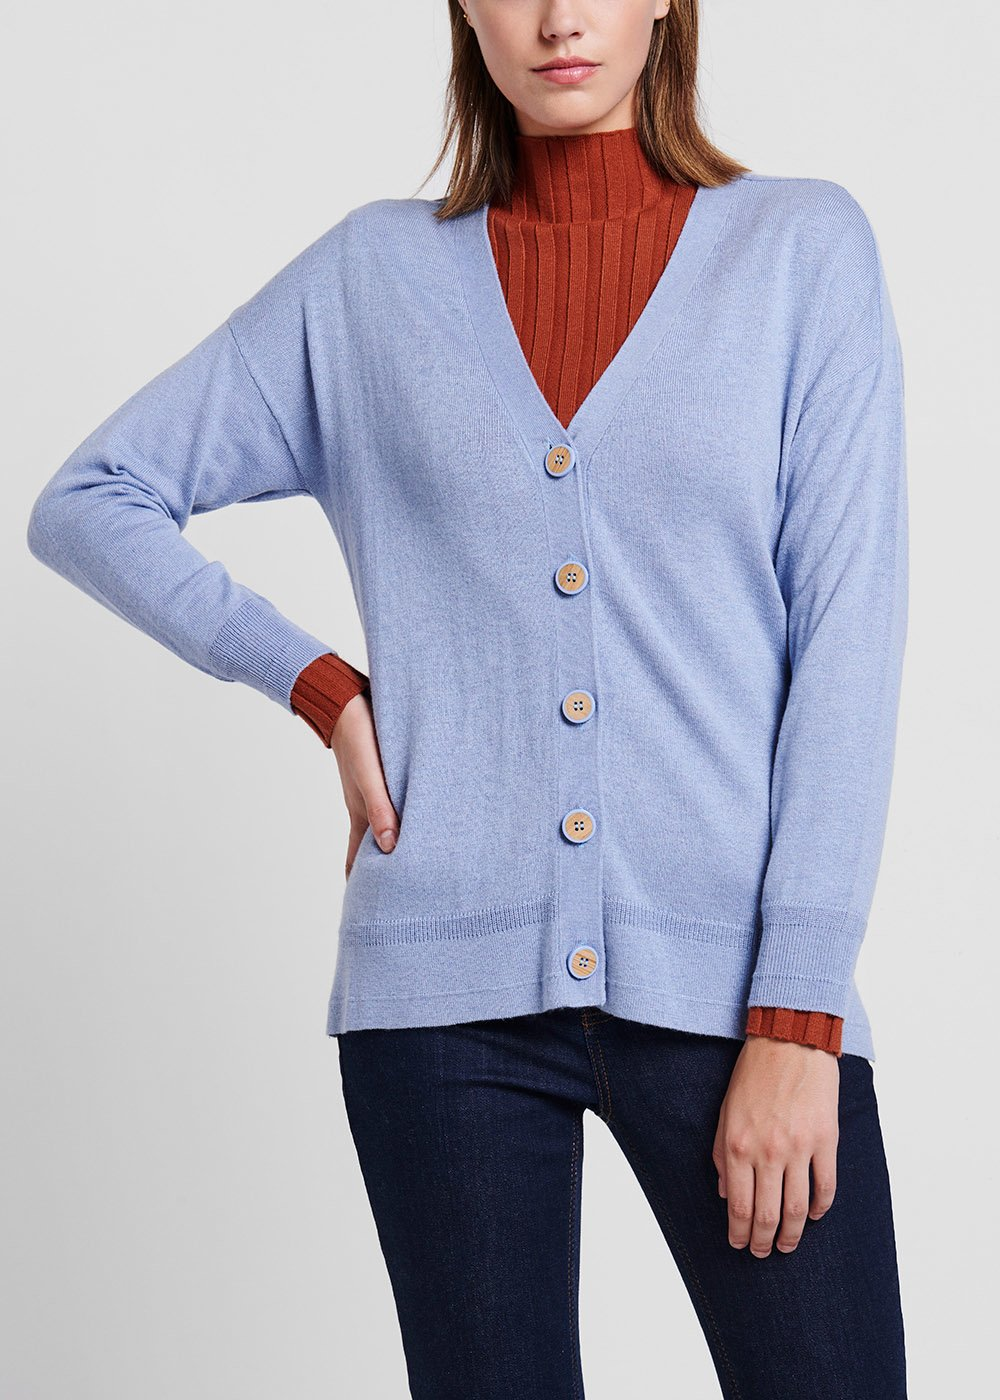 Material - coloured knit cardigan with wood-effect buttons